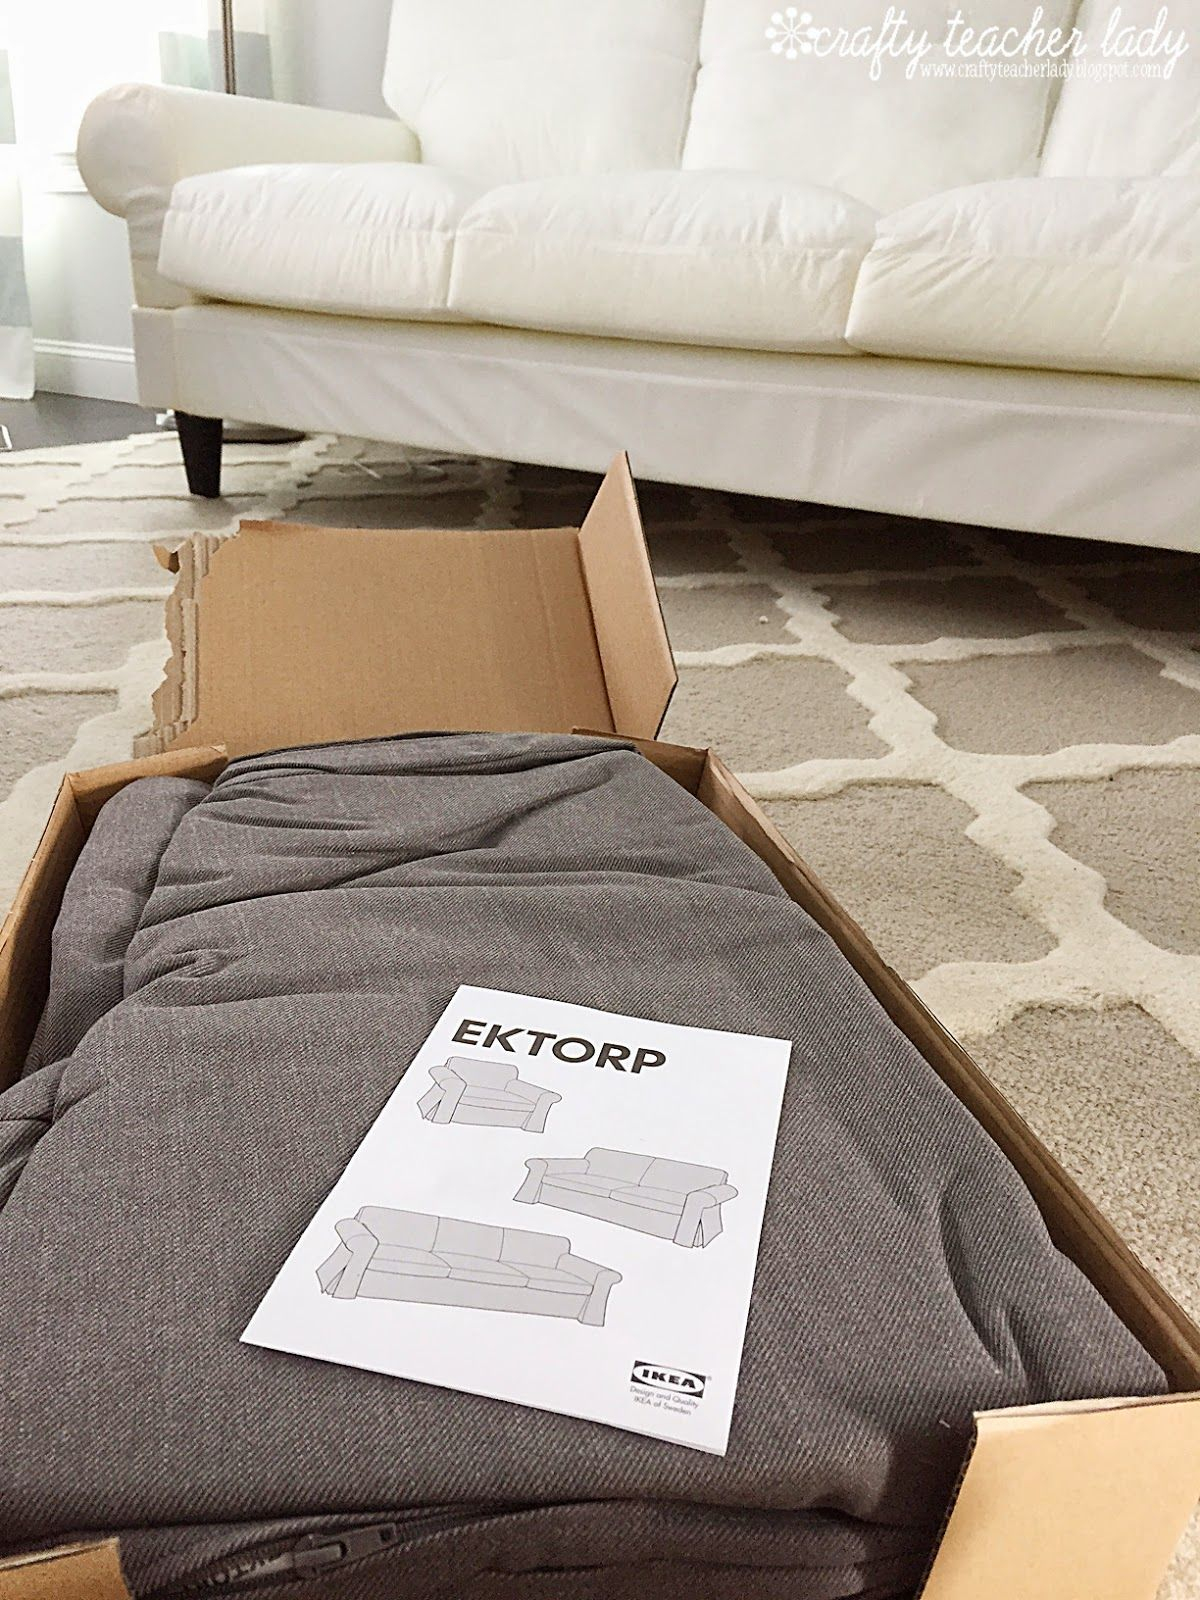 Ektorp 2 Places Nouveau Images Full Detailed Review Of the Ikea Ektorp sofa Series with Pictures Of